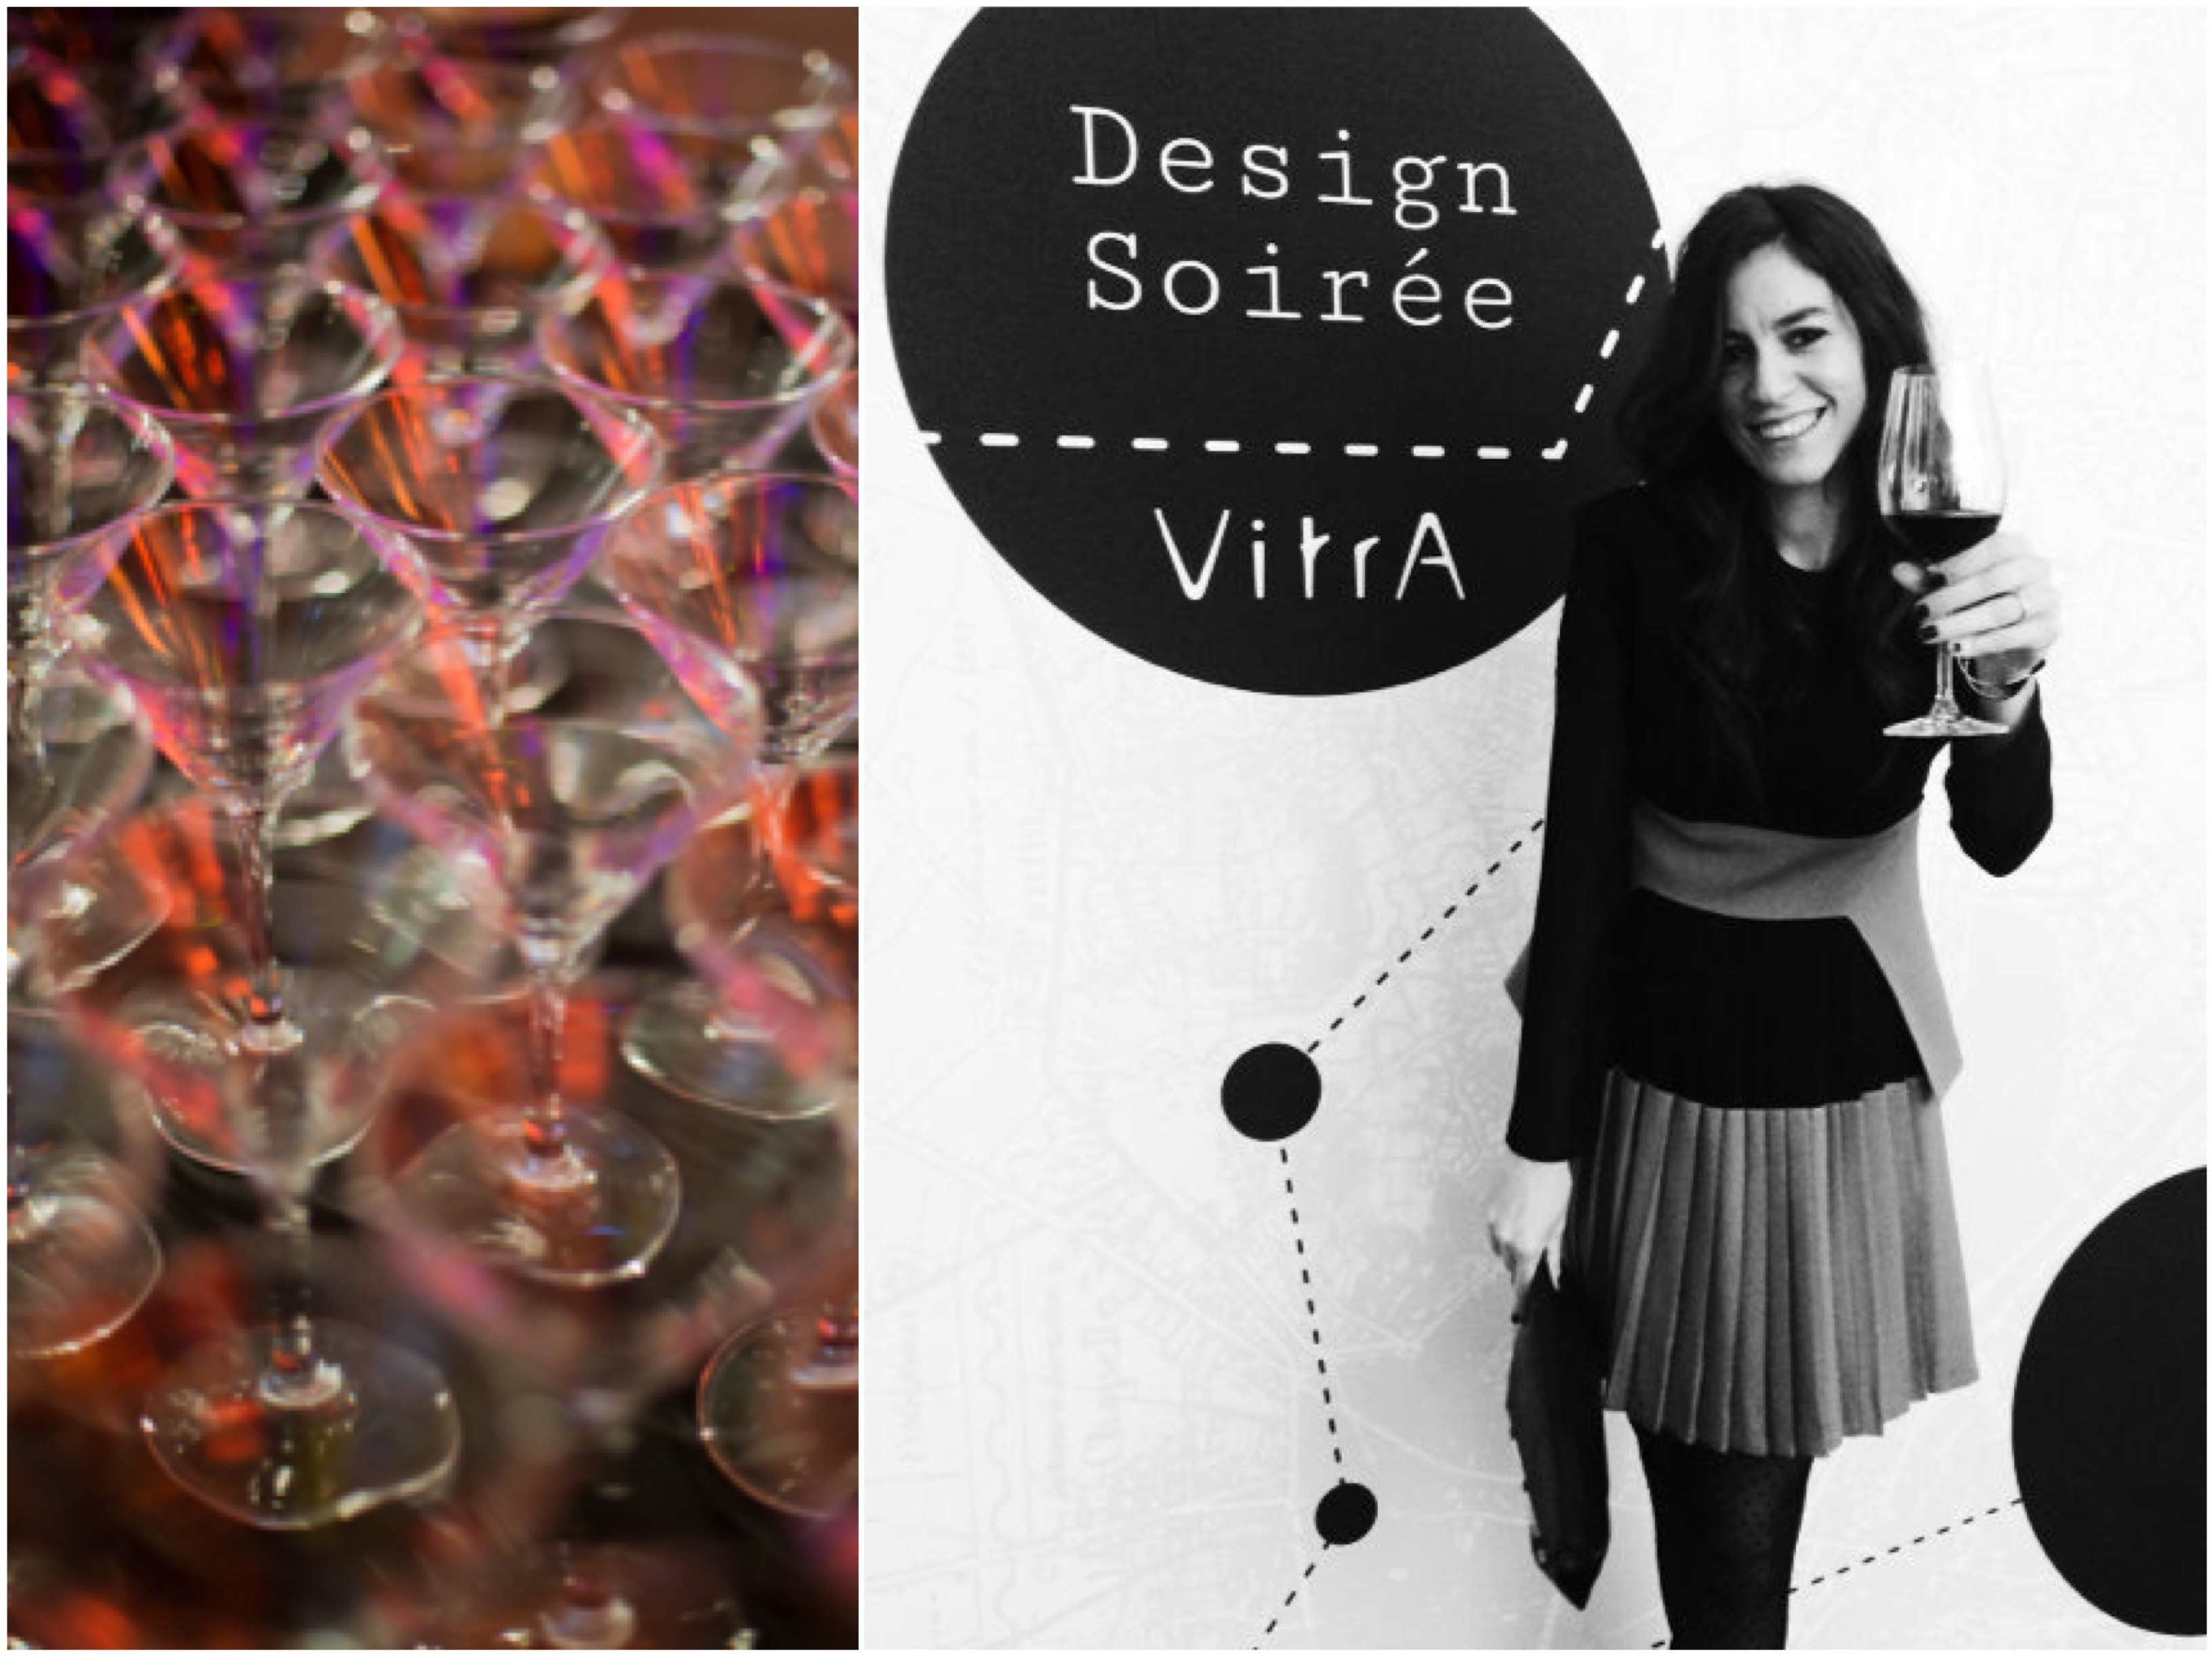 vitra, vitra design soiree, christophe pillet, paris, off ne giysem, billur saatci